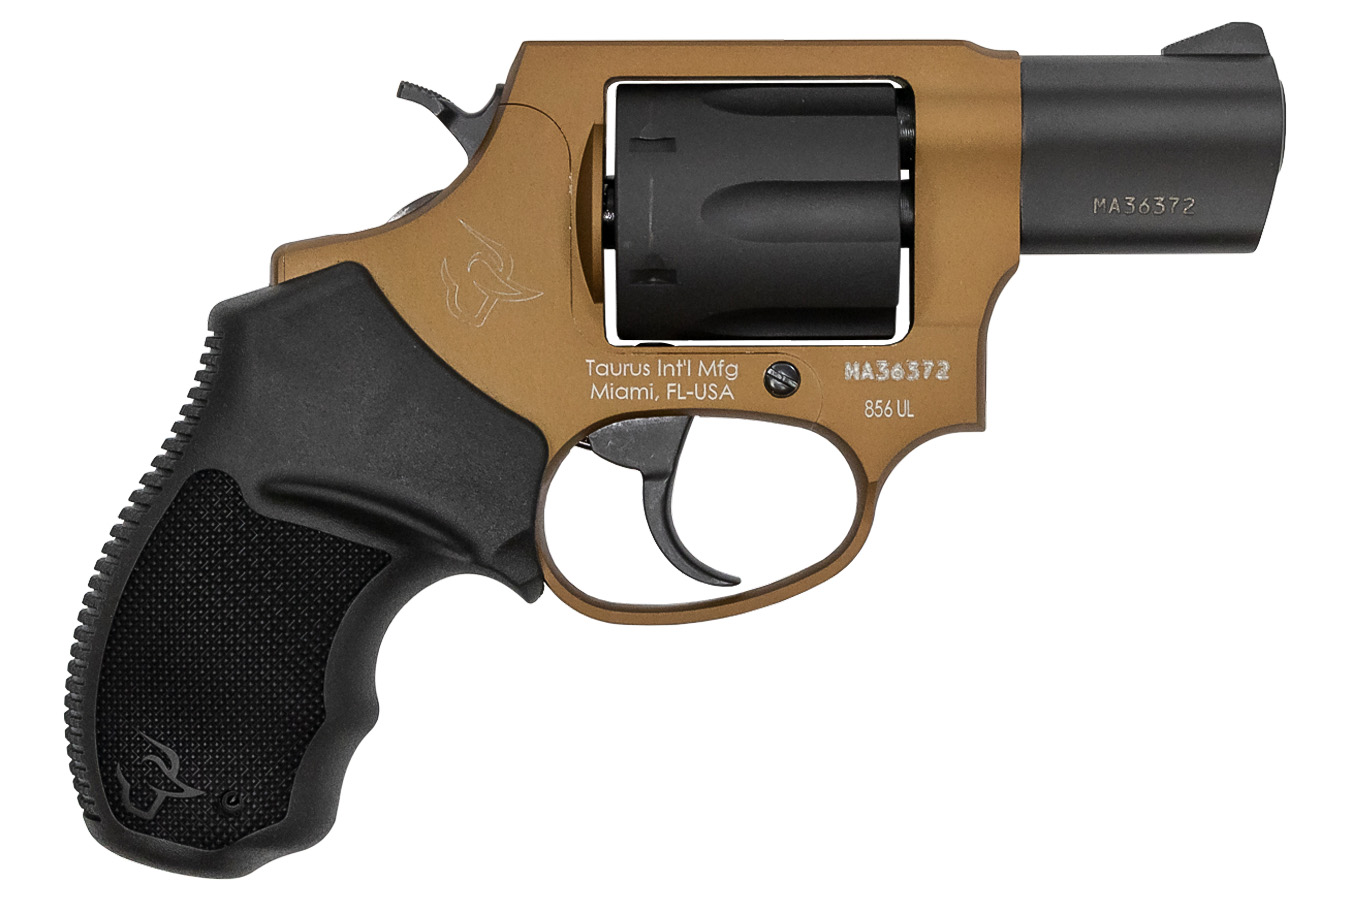 856 ULTRA LITE 38 SPECIAL BRONZE/BLACK